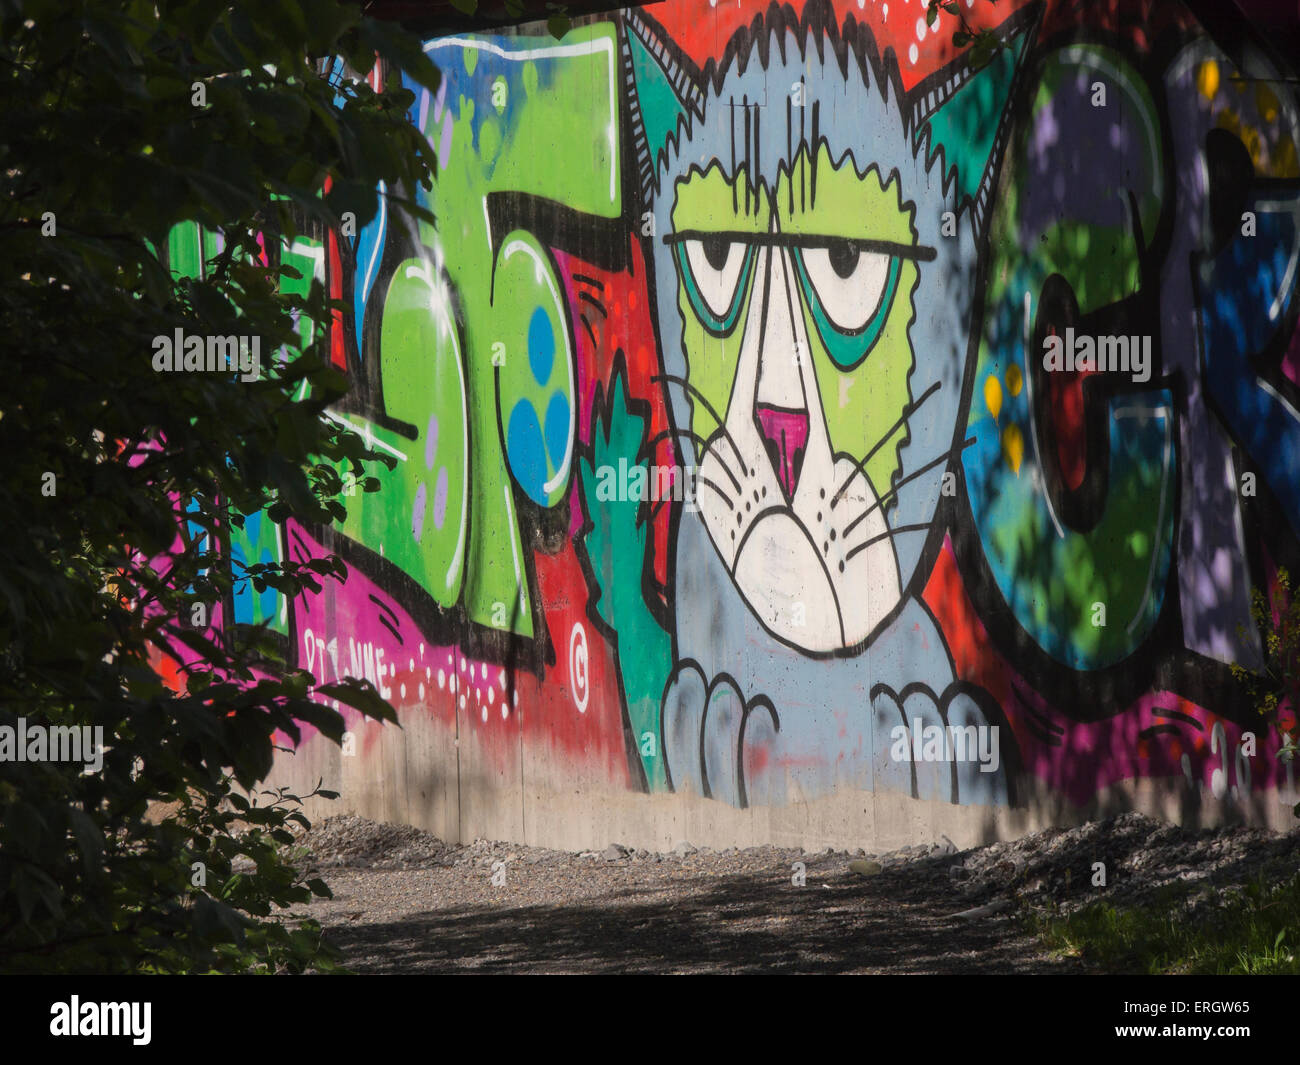 Street Art Graffiti Miserable Looking Cat With Colourful Letters